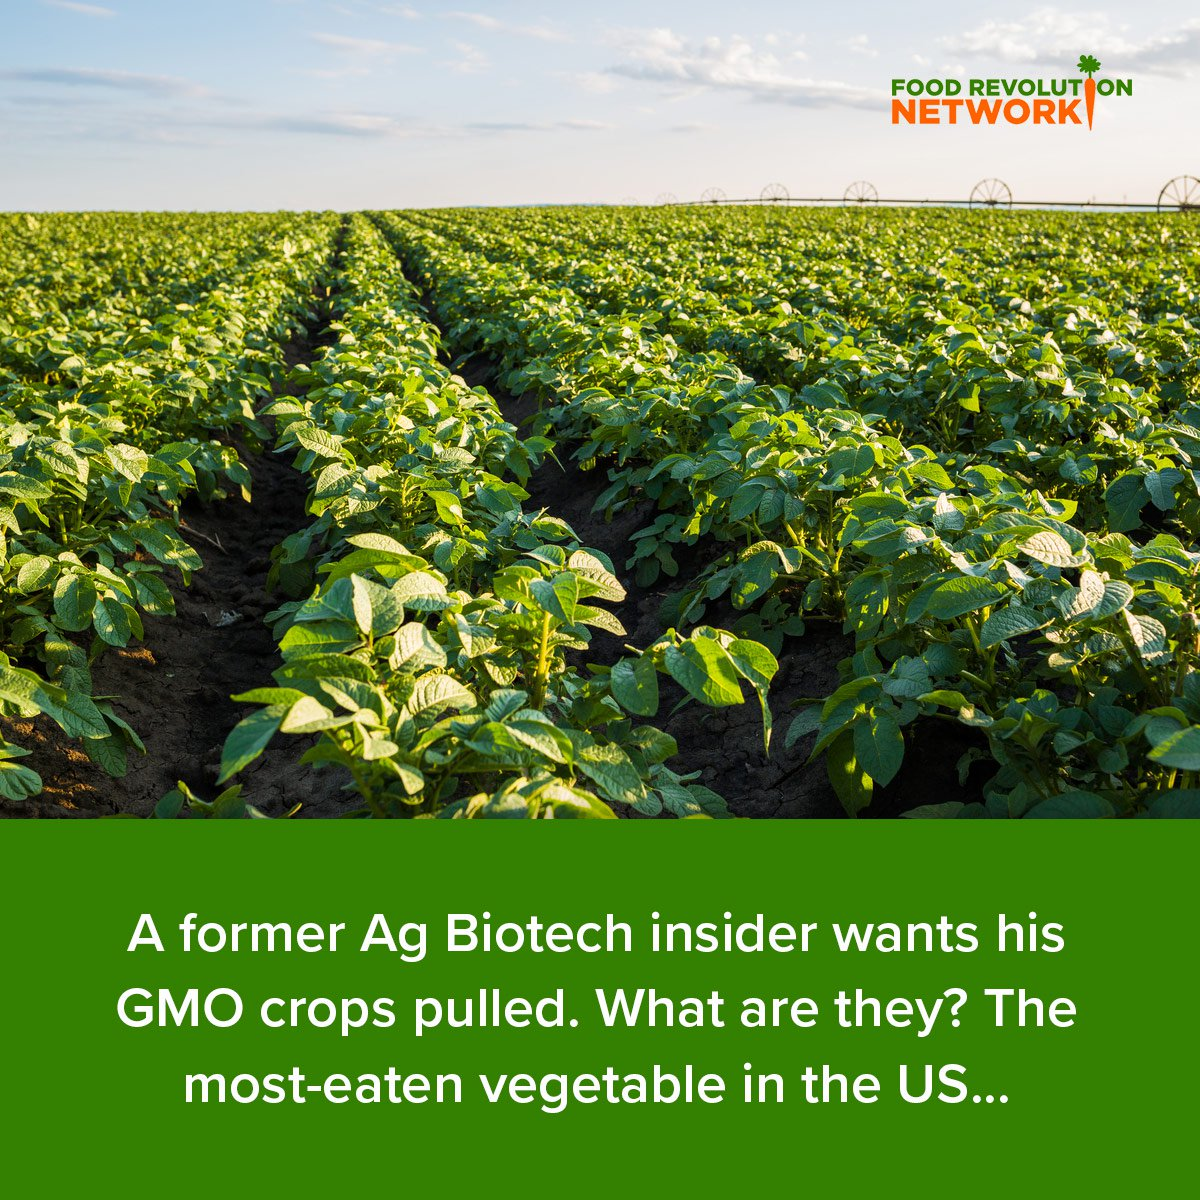 A former Ag Biotech insider wants his GMO crops pulled. What are they? The most-eaten vegetable in the US...